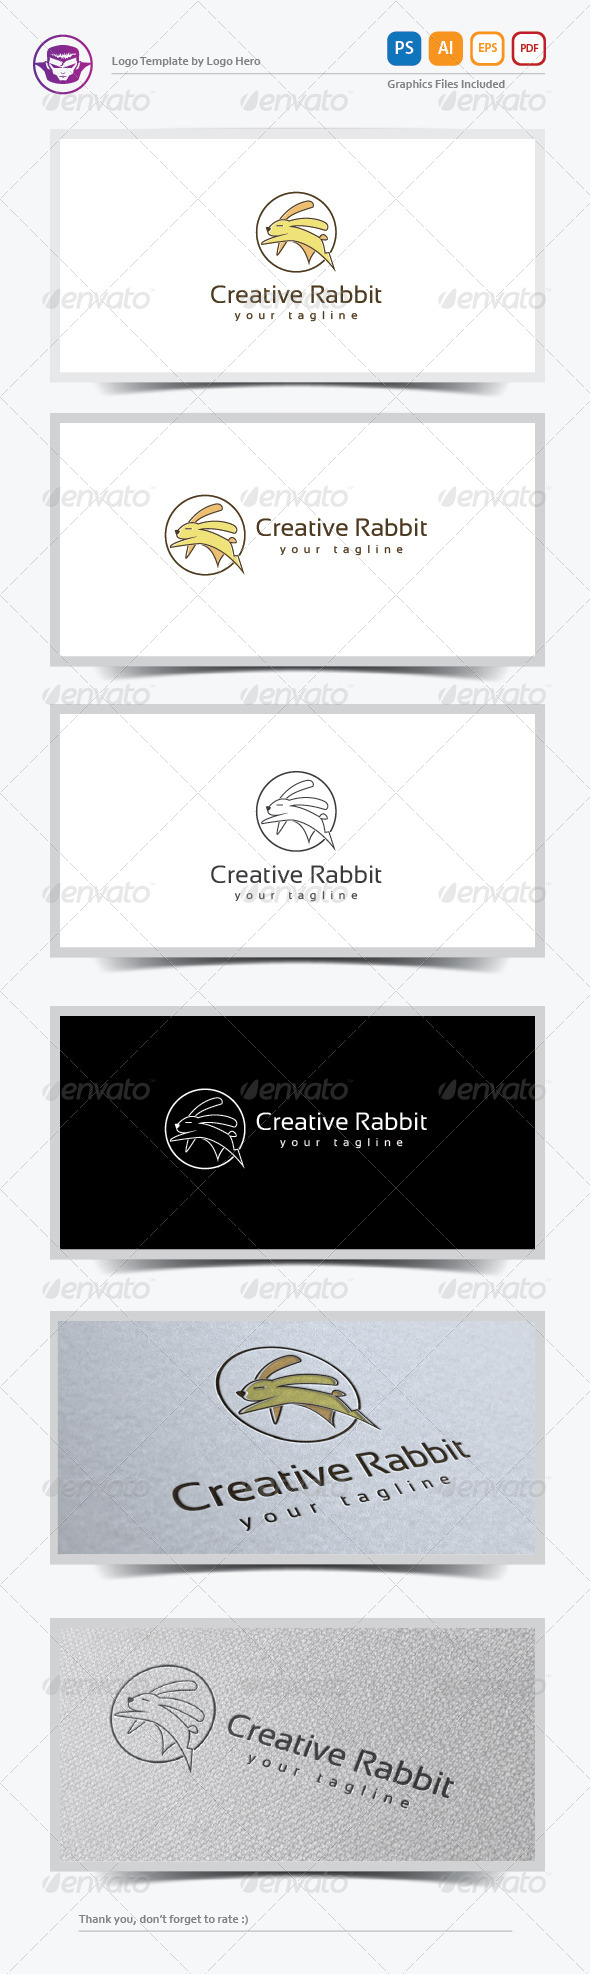 Creative Rabbit Logo Template